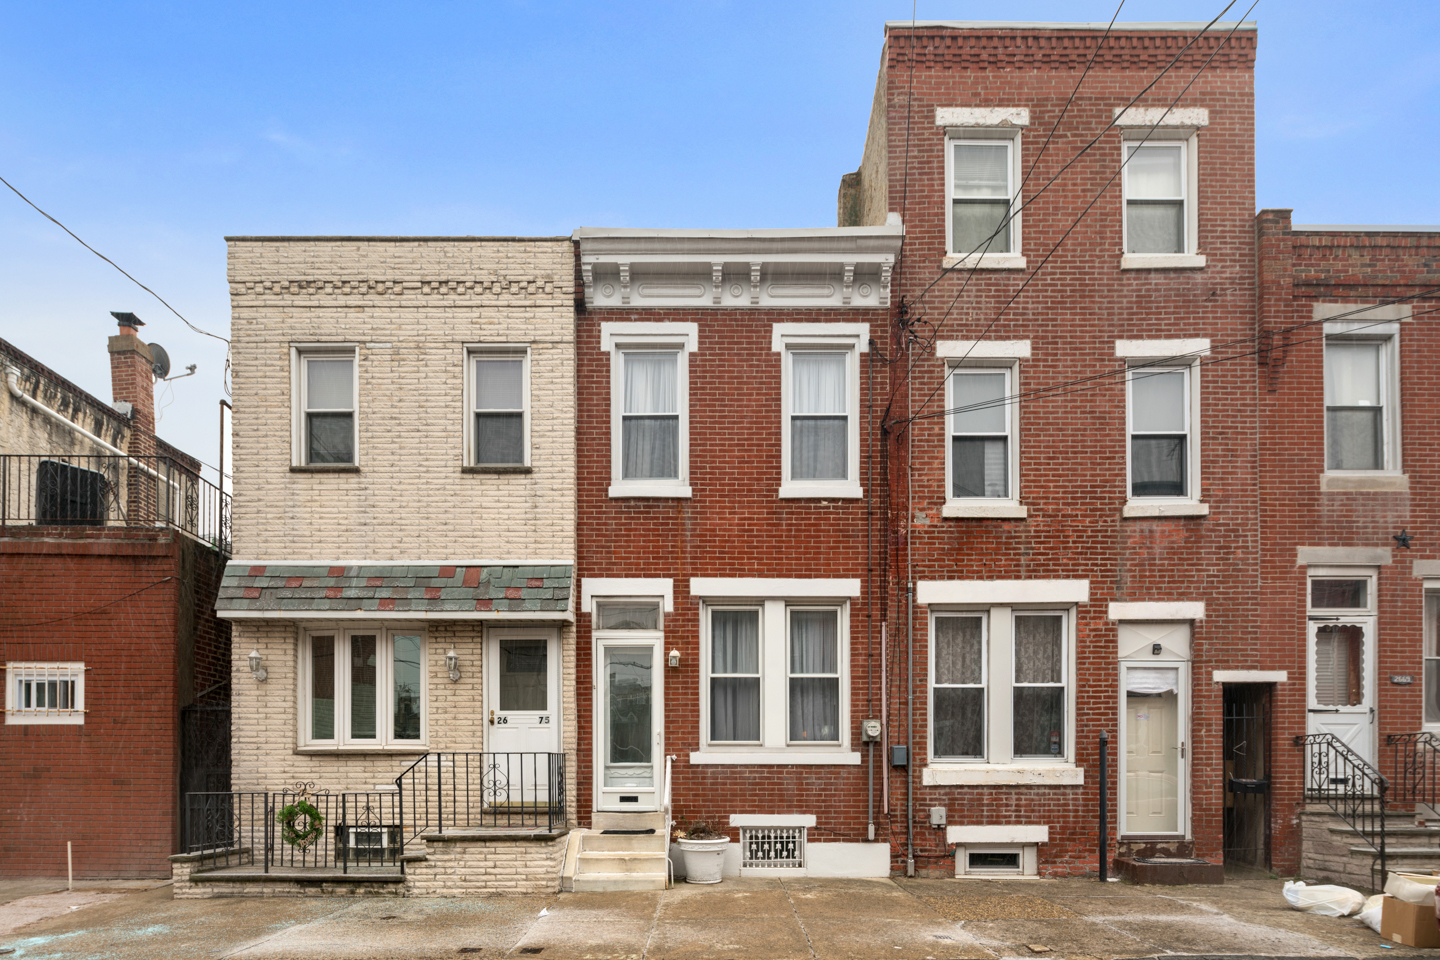 2673 E Thompson Street, 2 Bed / 1.5 Bath sold for $200,000.